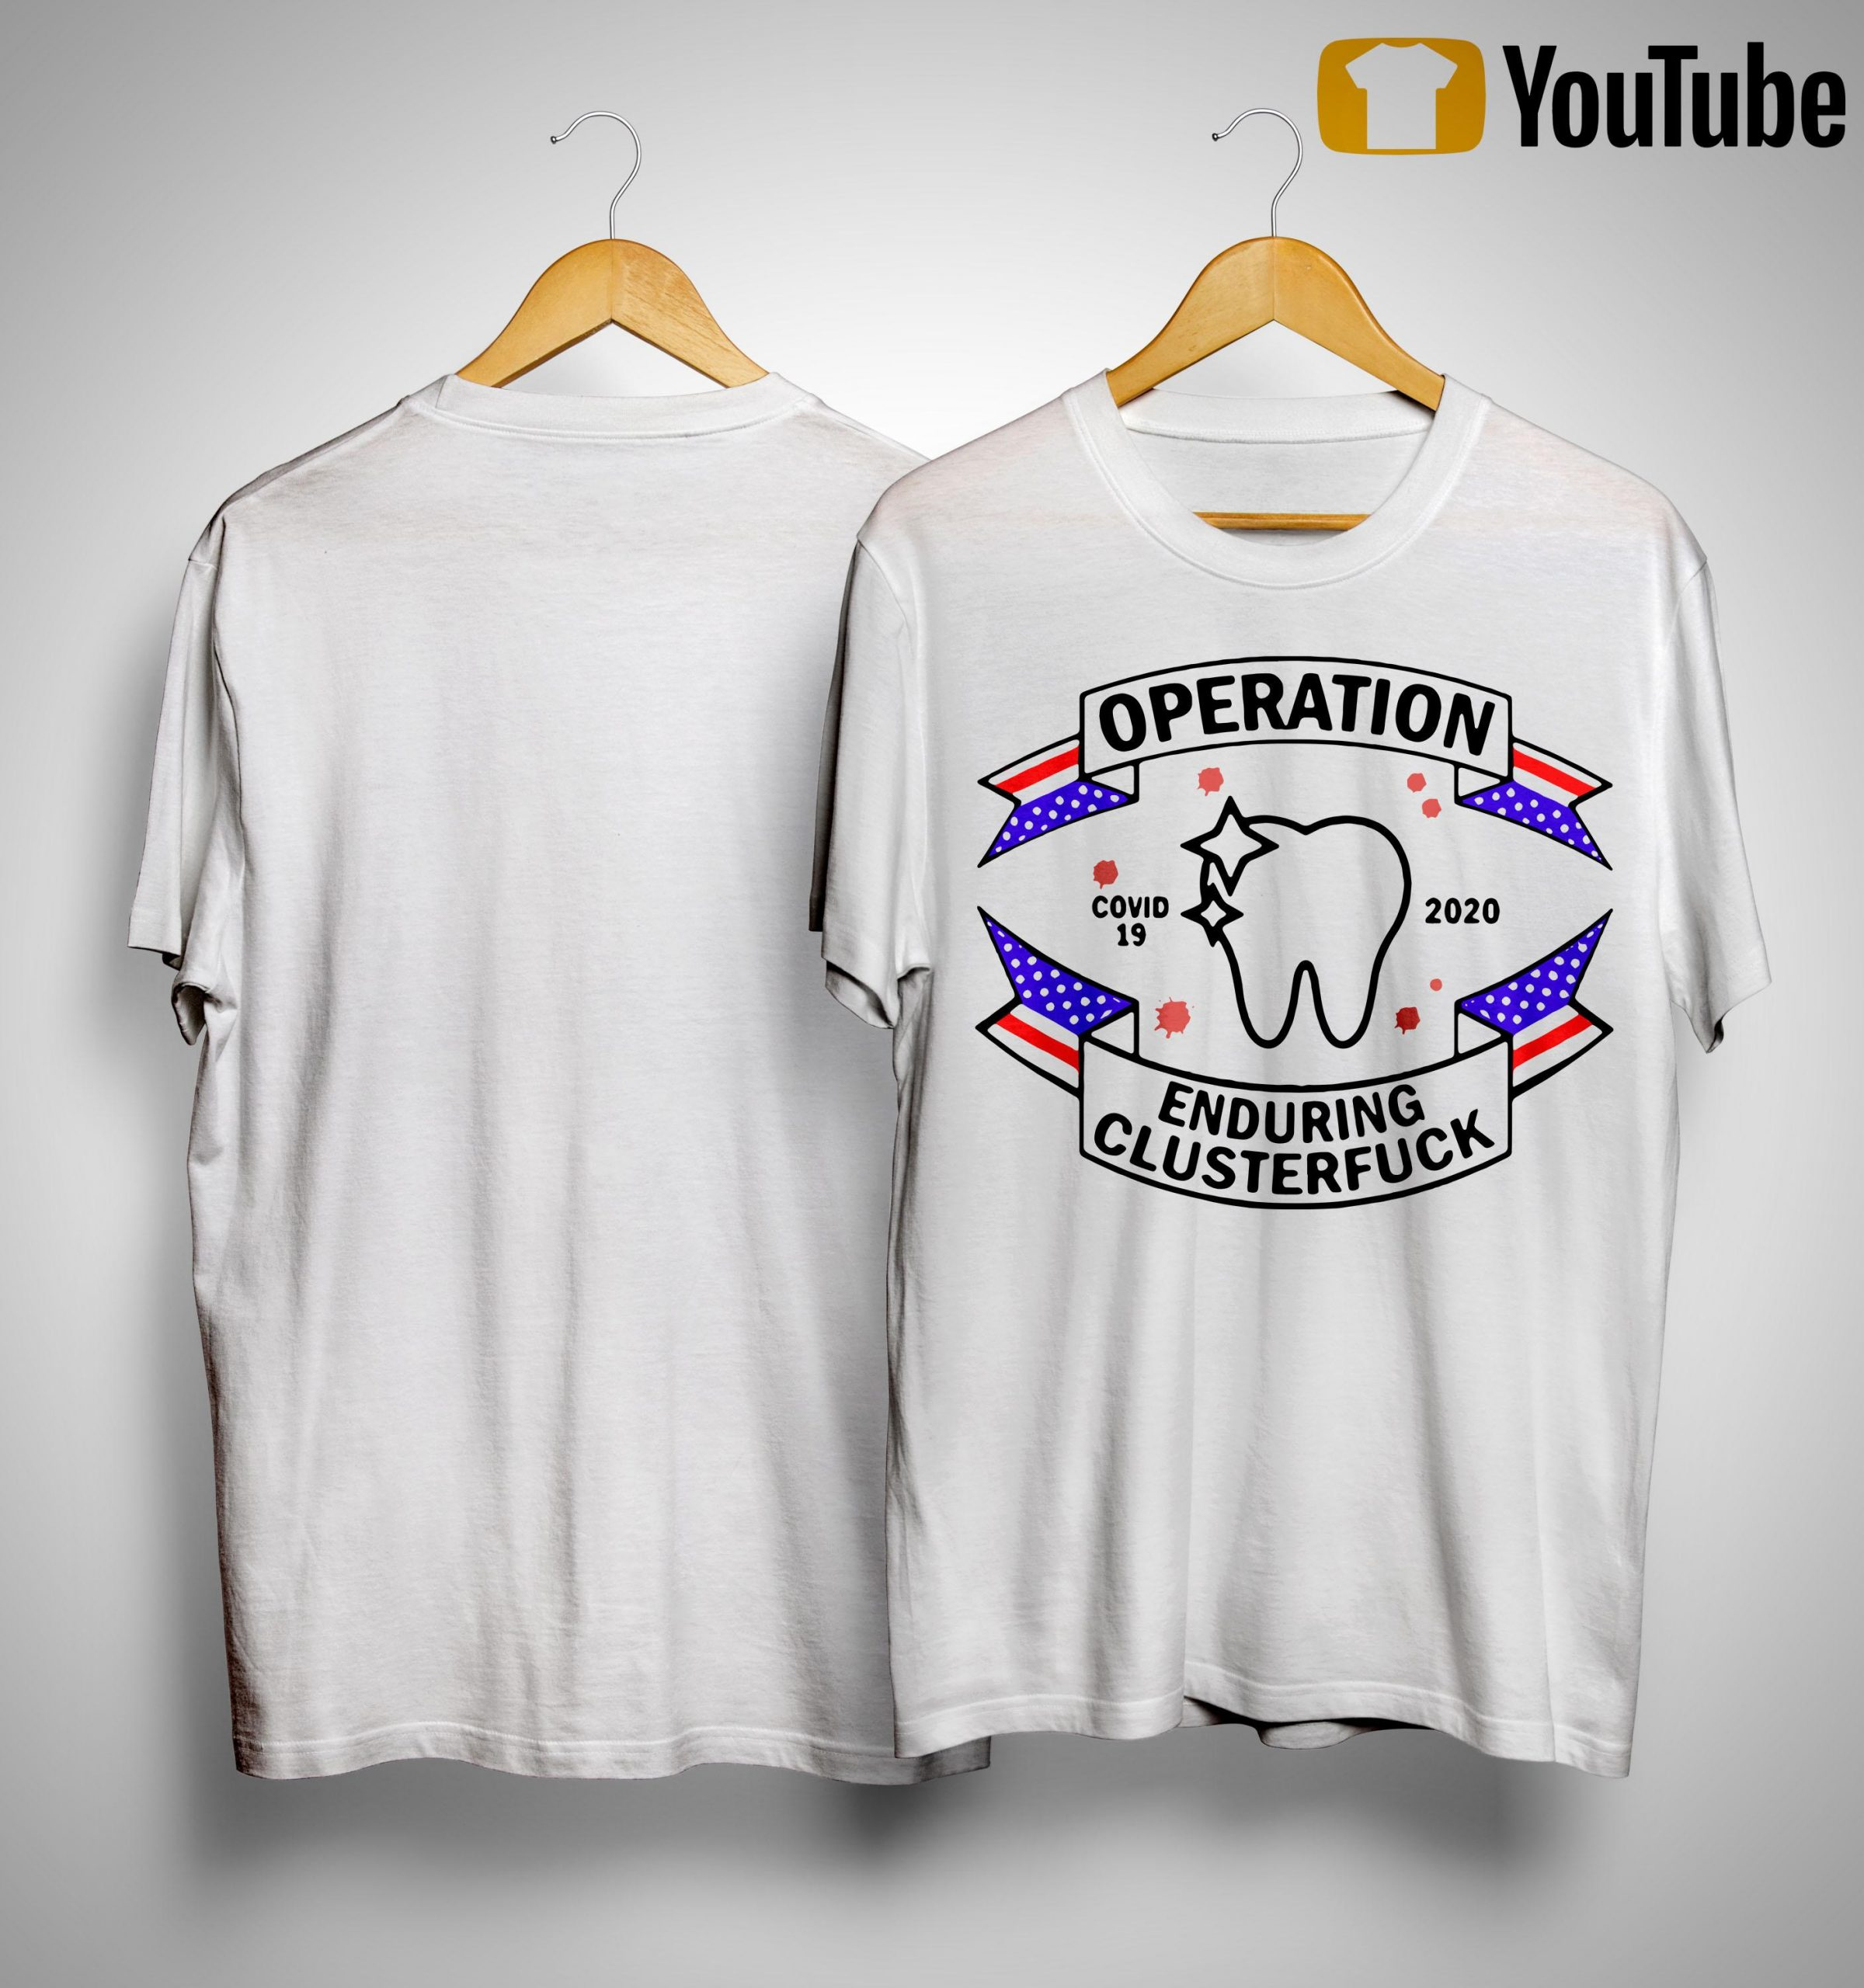 Dental Assistant Operation Enduring Clusterfuck Covid19 2020 Shirt